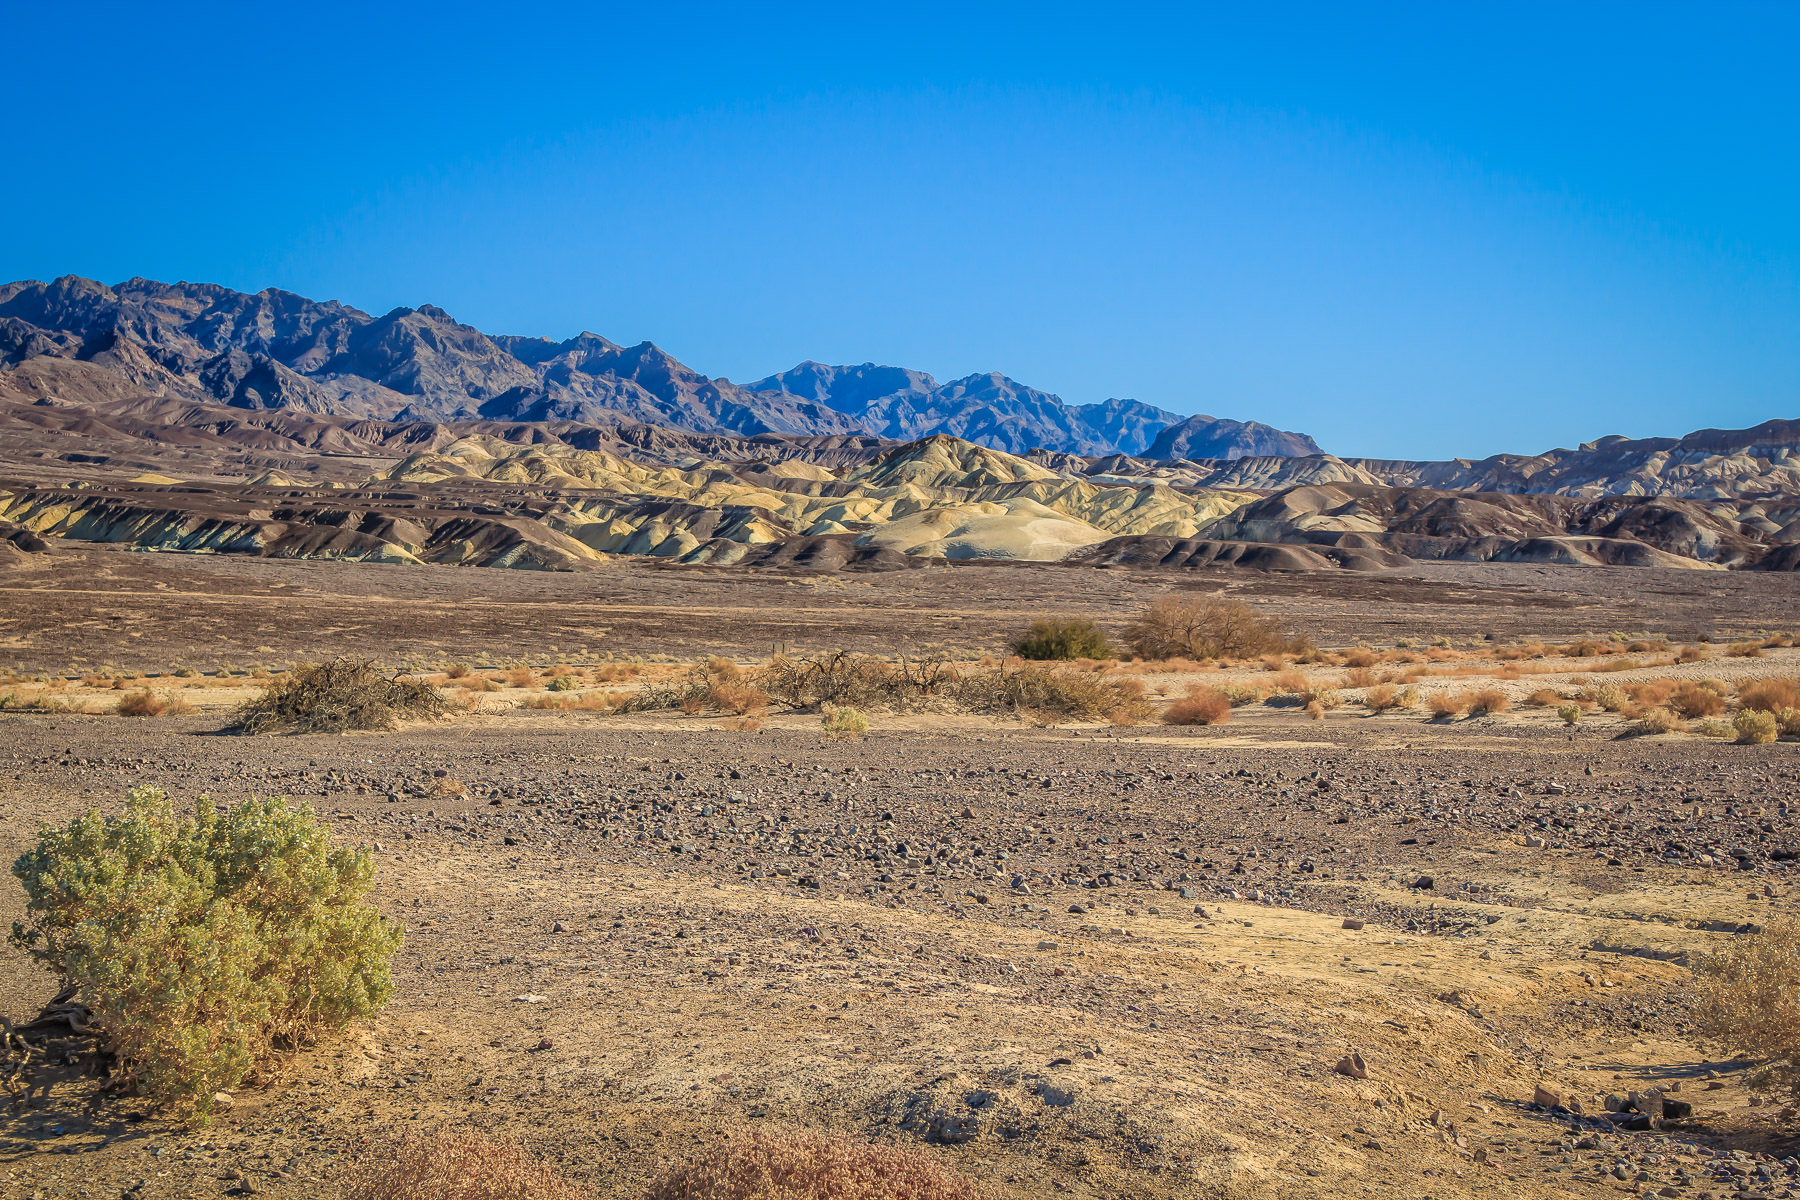 Mountains rise in the distance of Death Valley National Park's desert landscape.